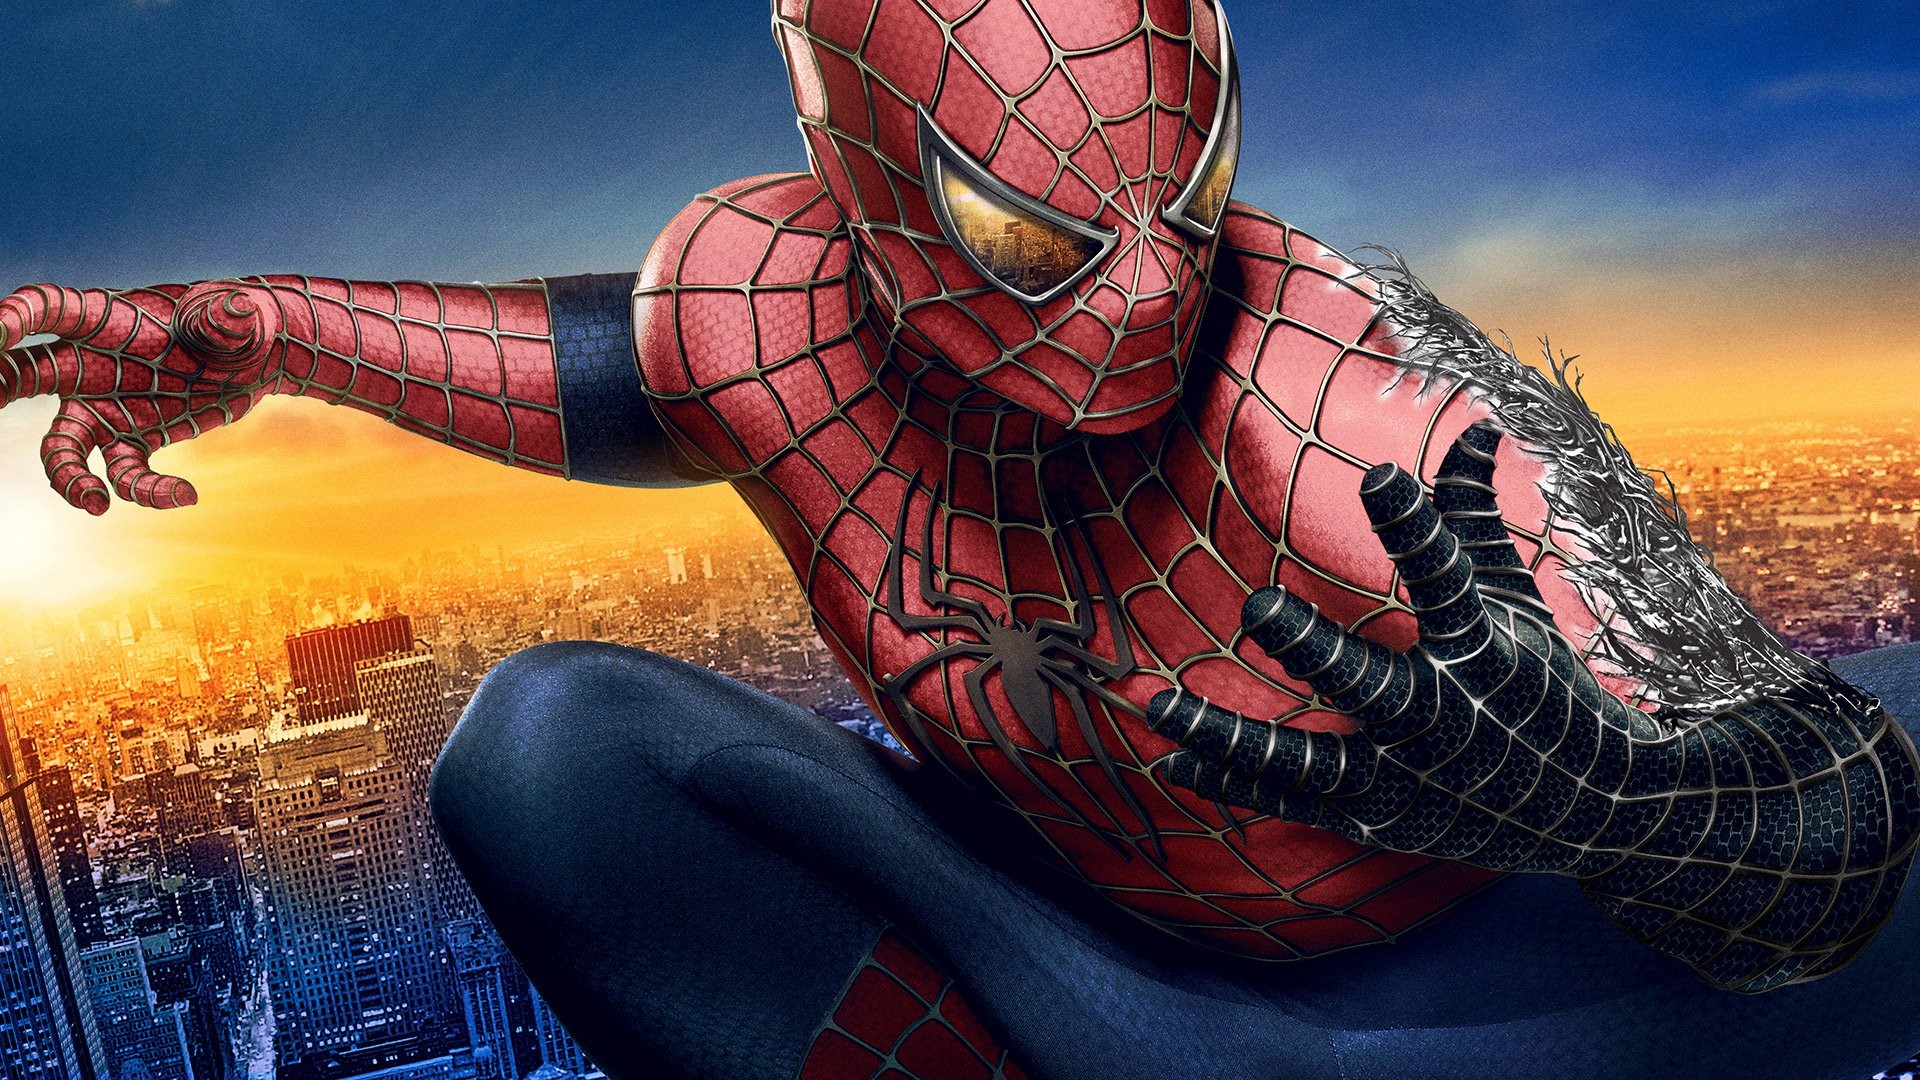 spider man 3 full movie videobash